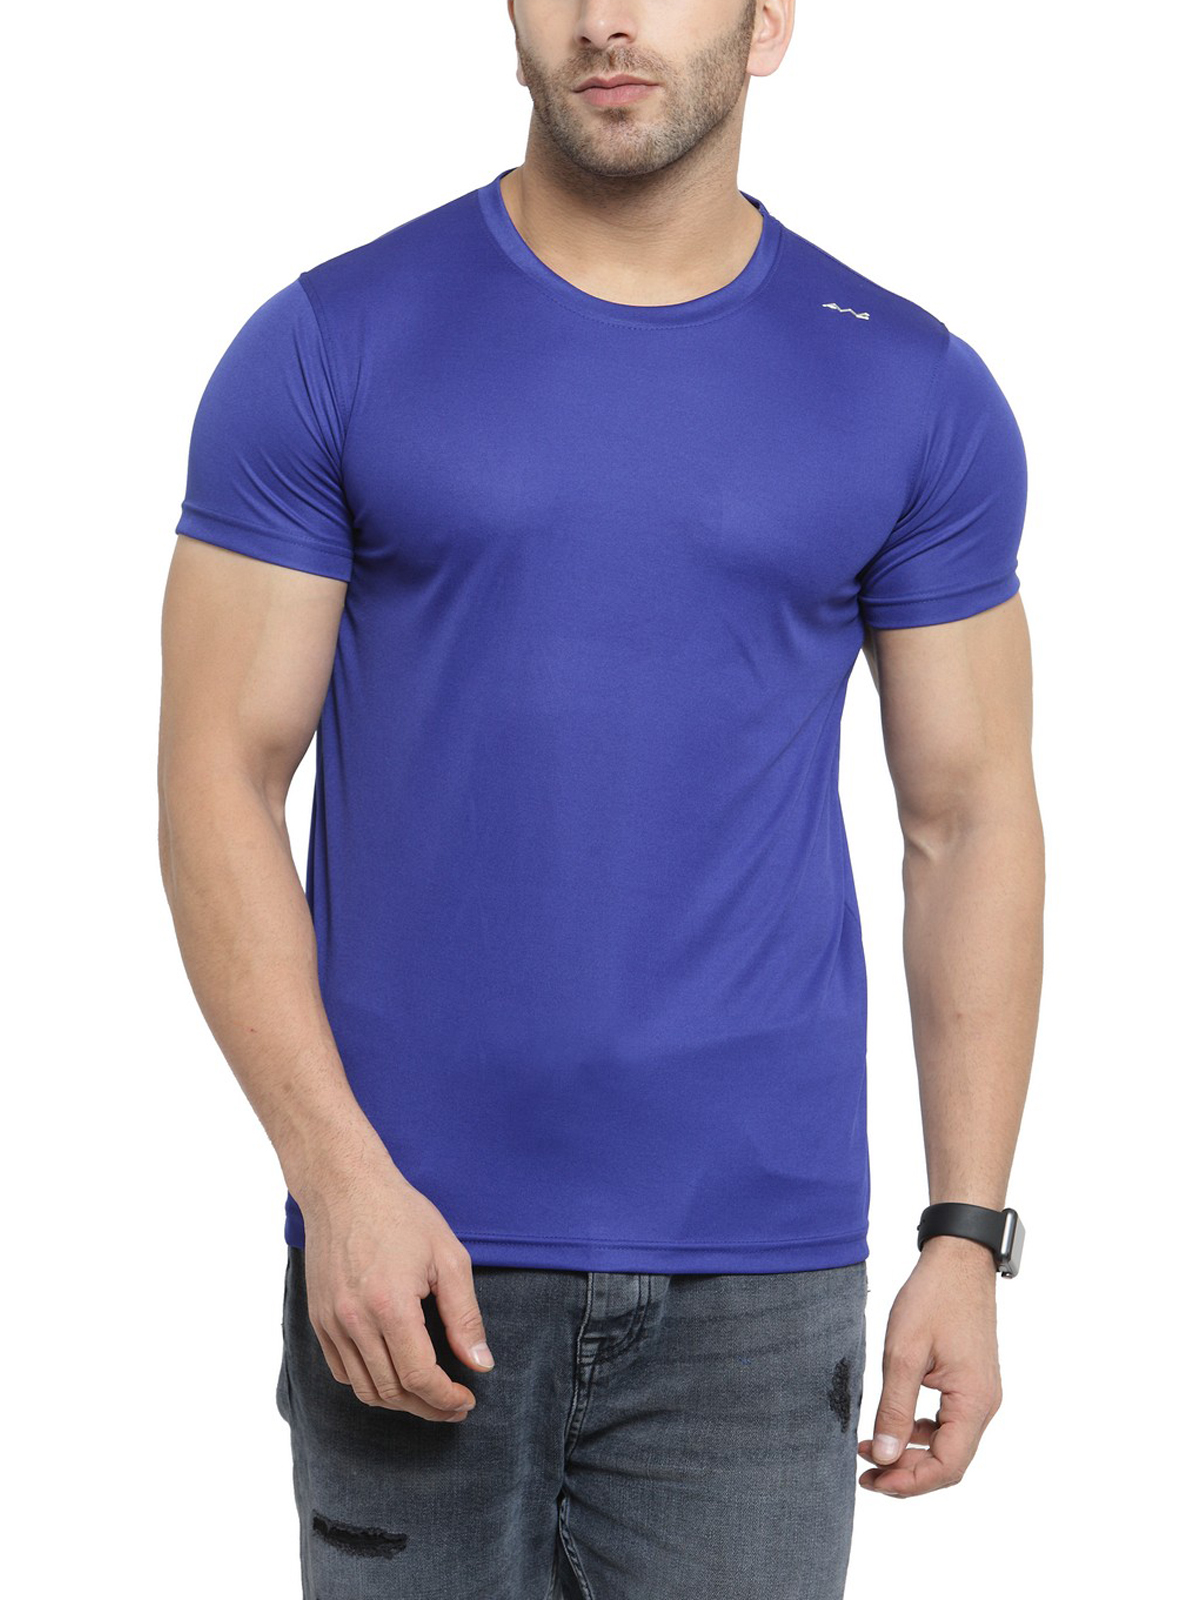 AWG Men's Blue Jersey Dryfit Polyester Round Neck T-shirt